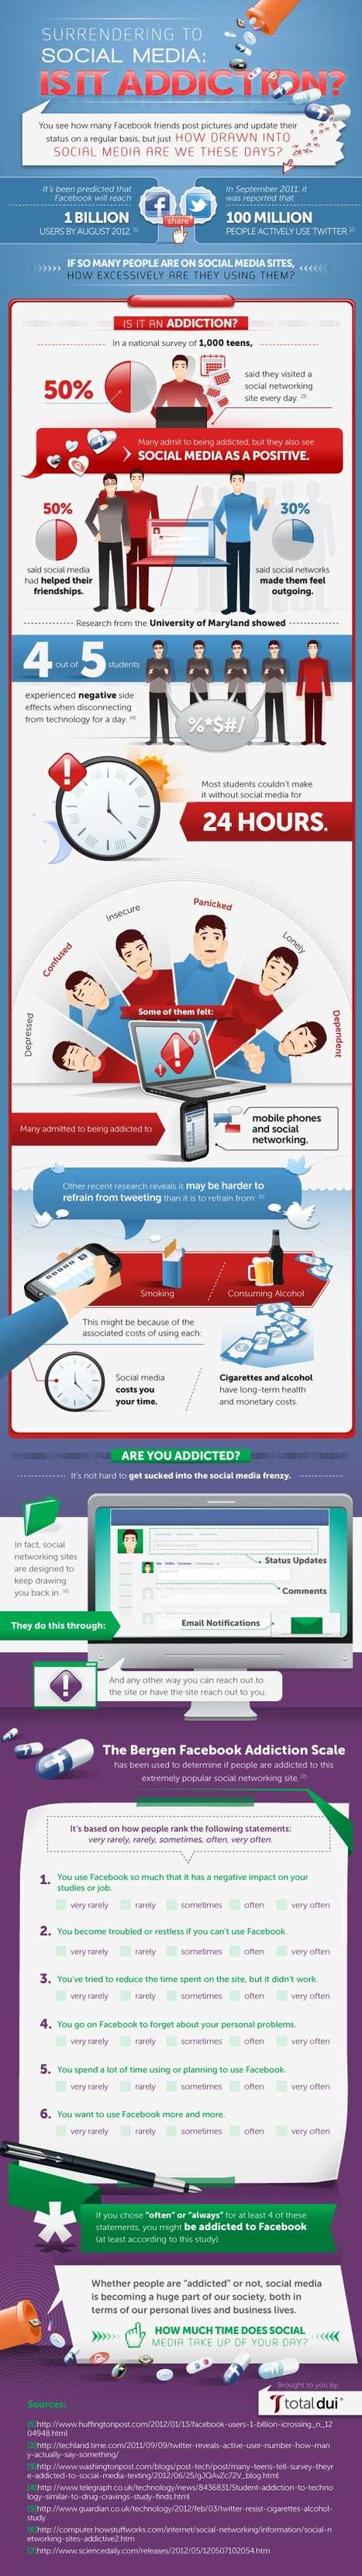 How Addictive Is Social Media? [INFOGRAPHIC] | Time to Learn | Scoop.it